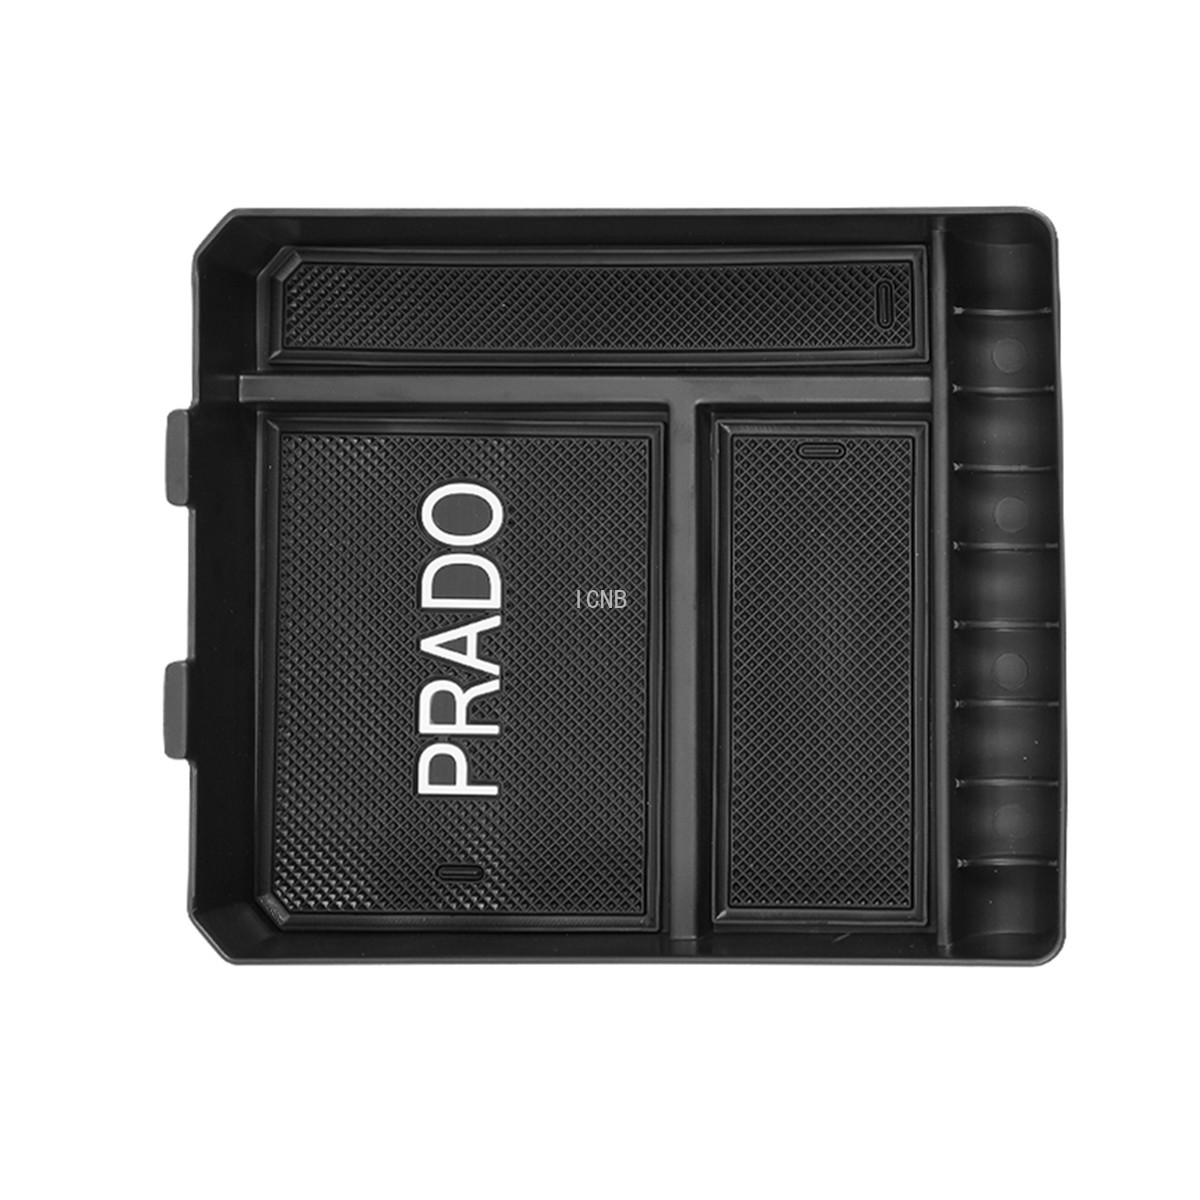 For <font><b>Toyota</b></font> Land Cruiser Prado <font><b>120</b></font> 2003-2009 Without A Refrigerator 150 2010-2019 with The Refrigerator Armrest box storage box image